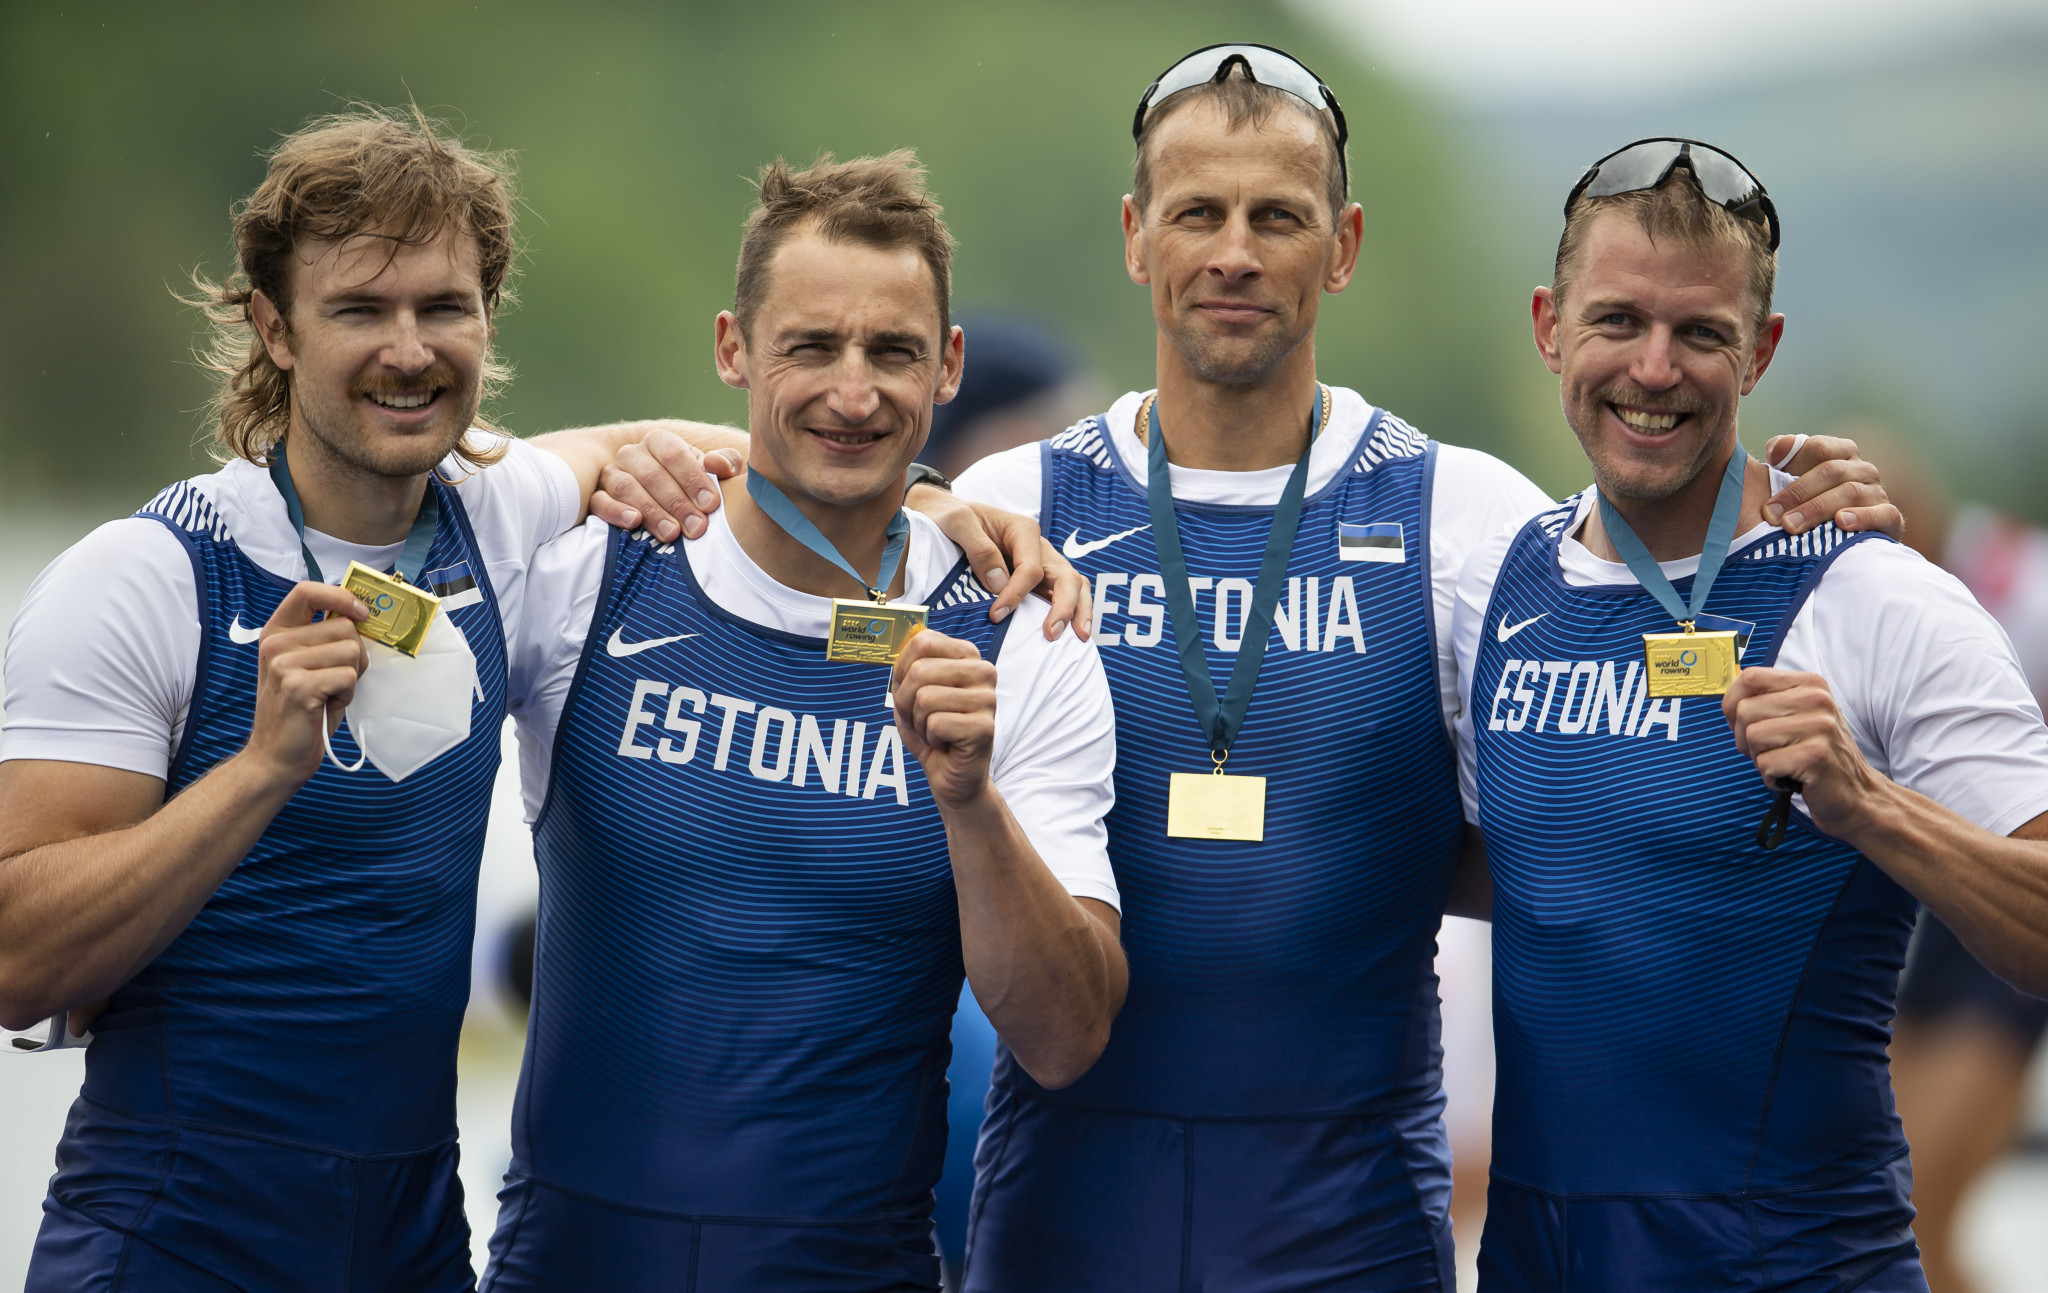 Nike is among eight companies that have agreed to sponsor the Estonian Olympic team until 2024 ©Getty Images